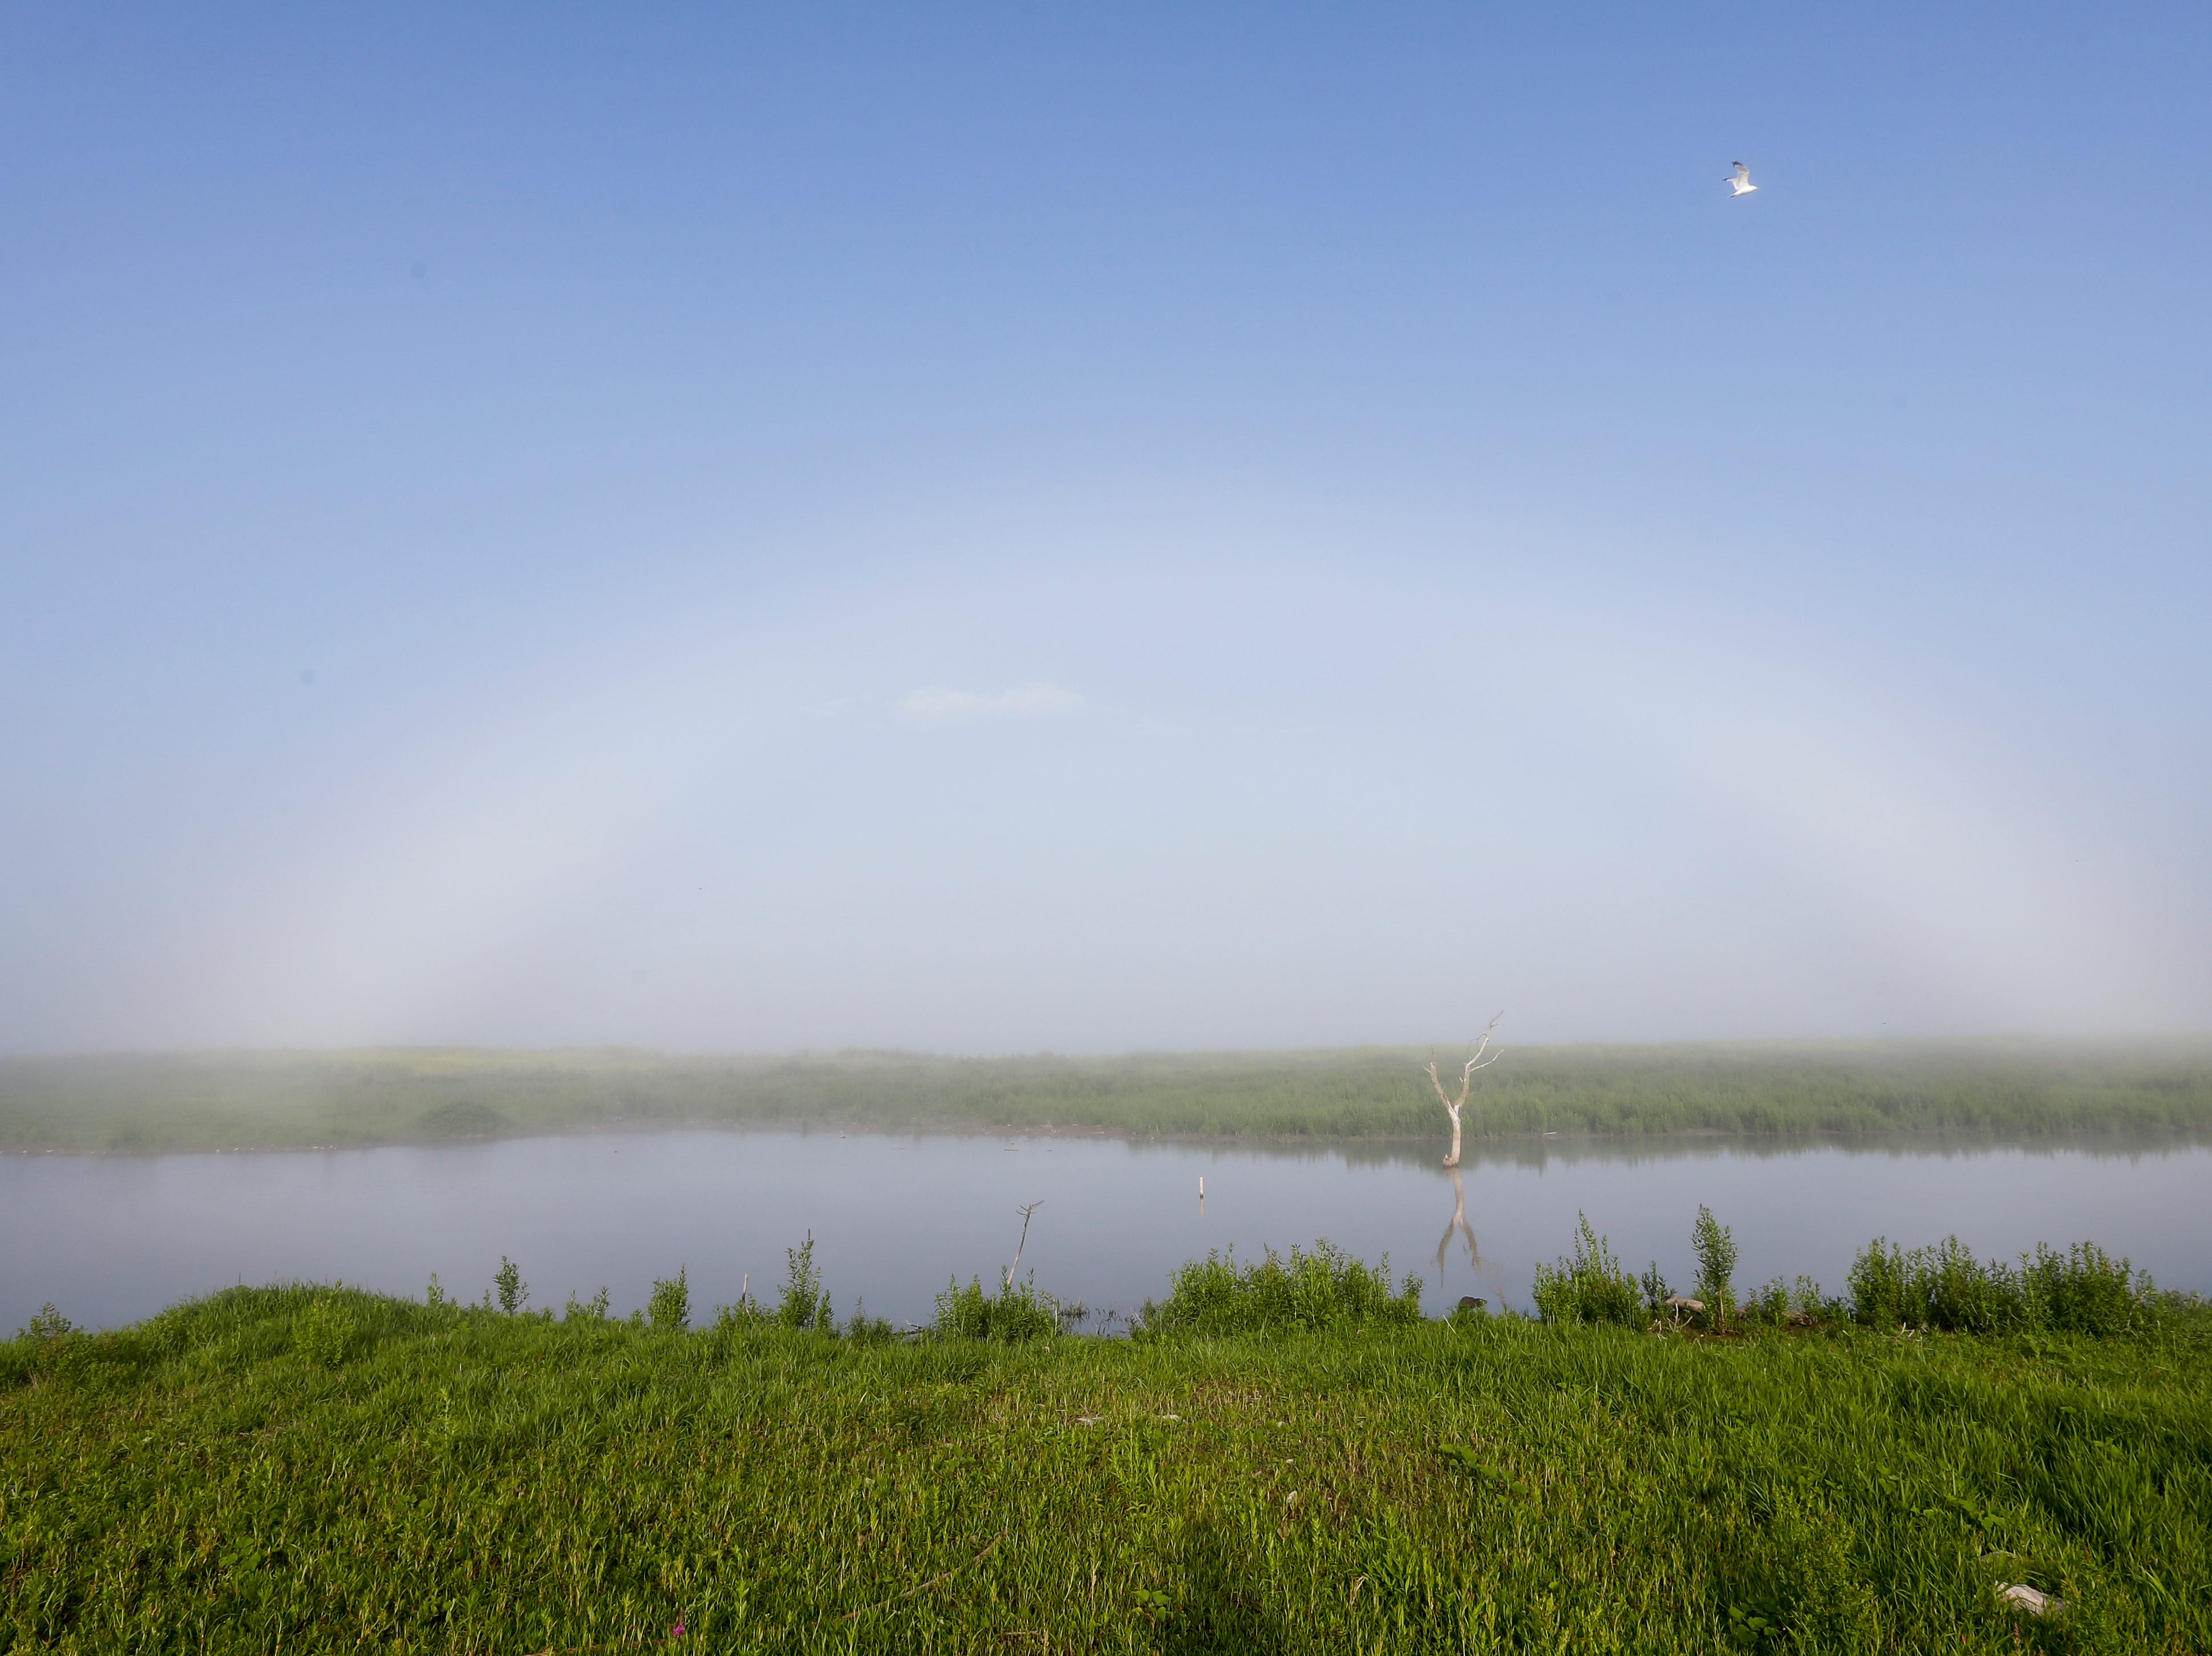 """A """"fogbow"""" forms over the containment area near the harbor Saturday, July 14, 2018, in Manitowoc, Wis. Josh Clark/USA TODAY NETWORK-Wisconsin"""